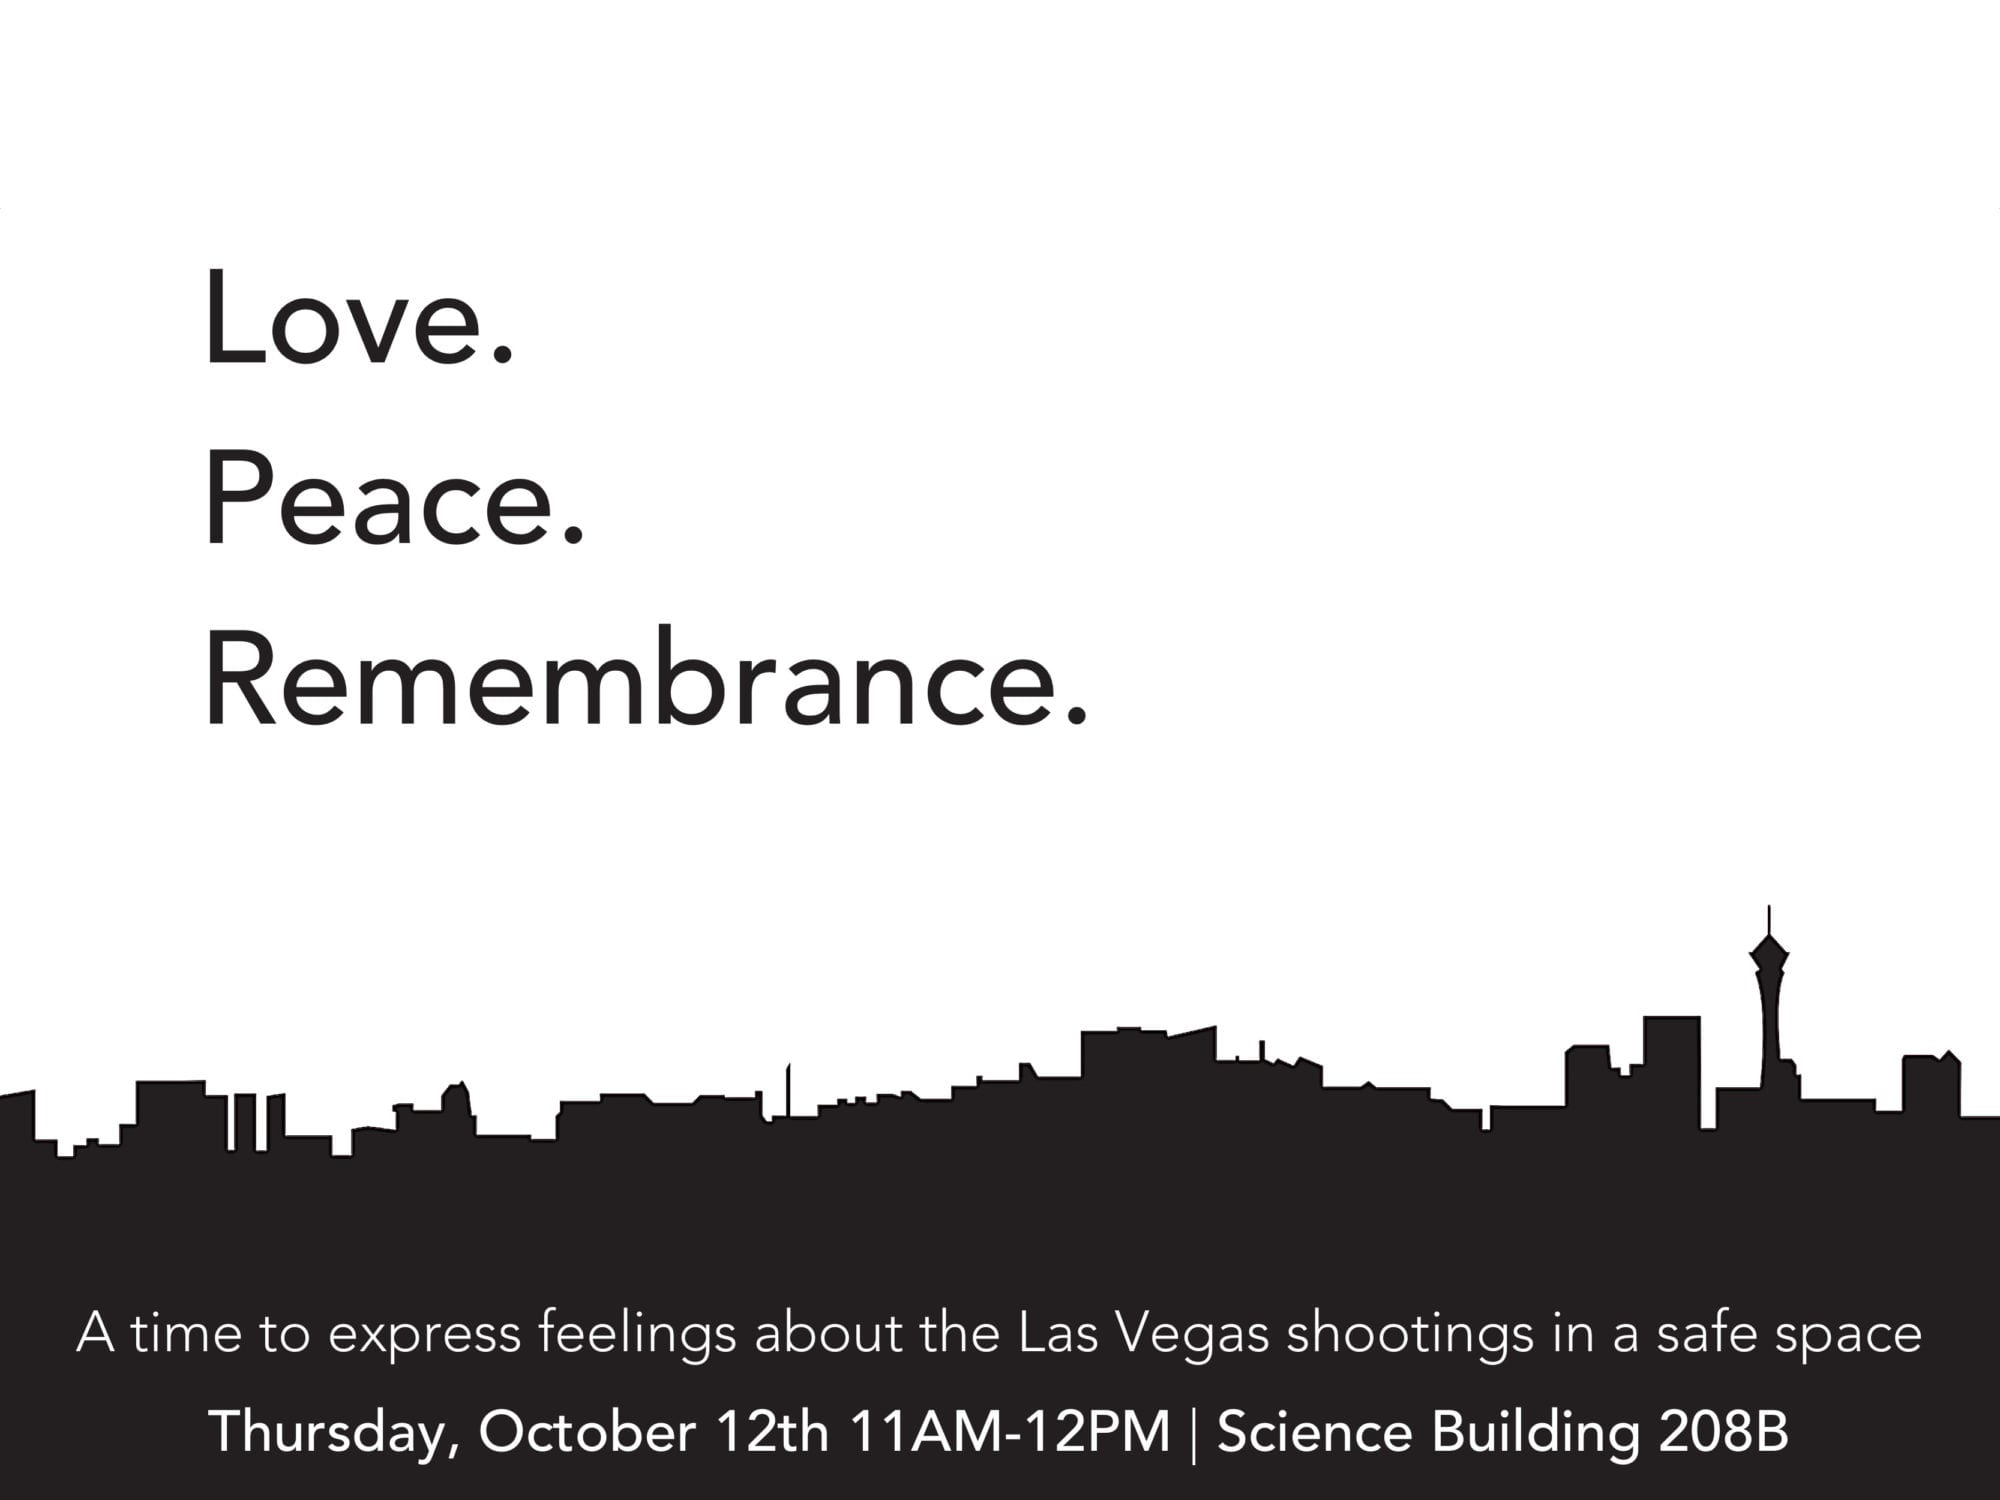 Love, peace, remembrance: Express your feelings about Las Vegas incident on Oct. 12